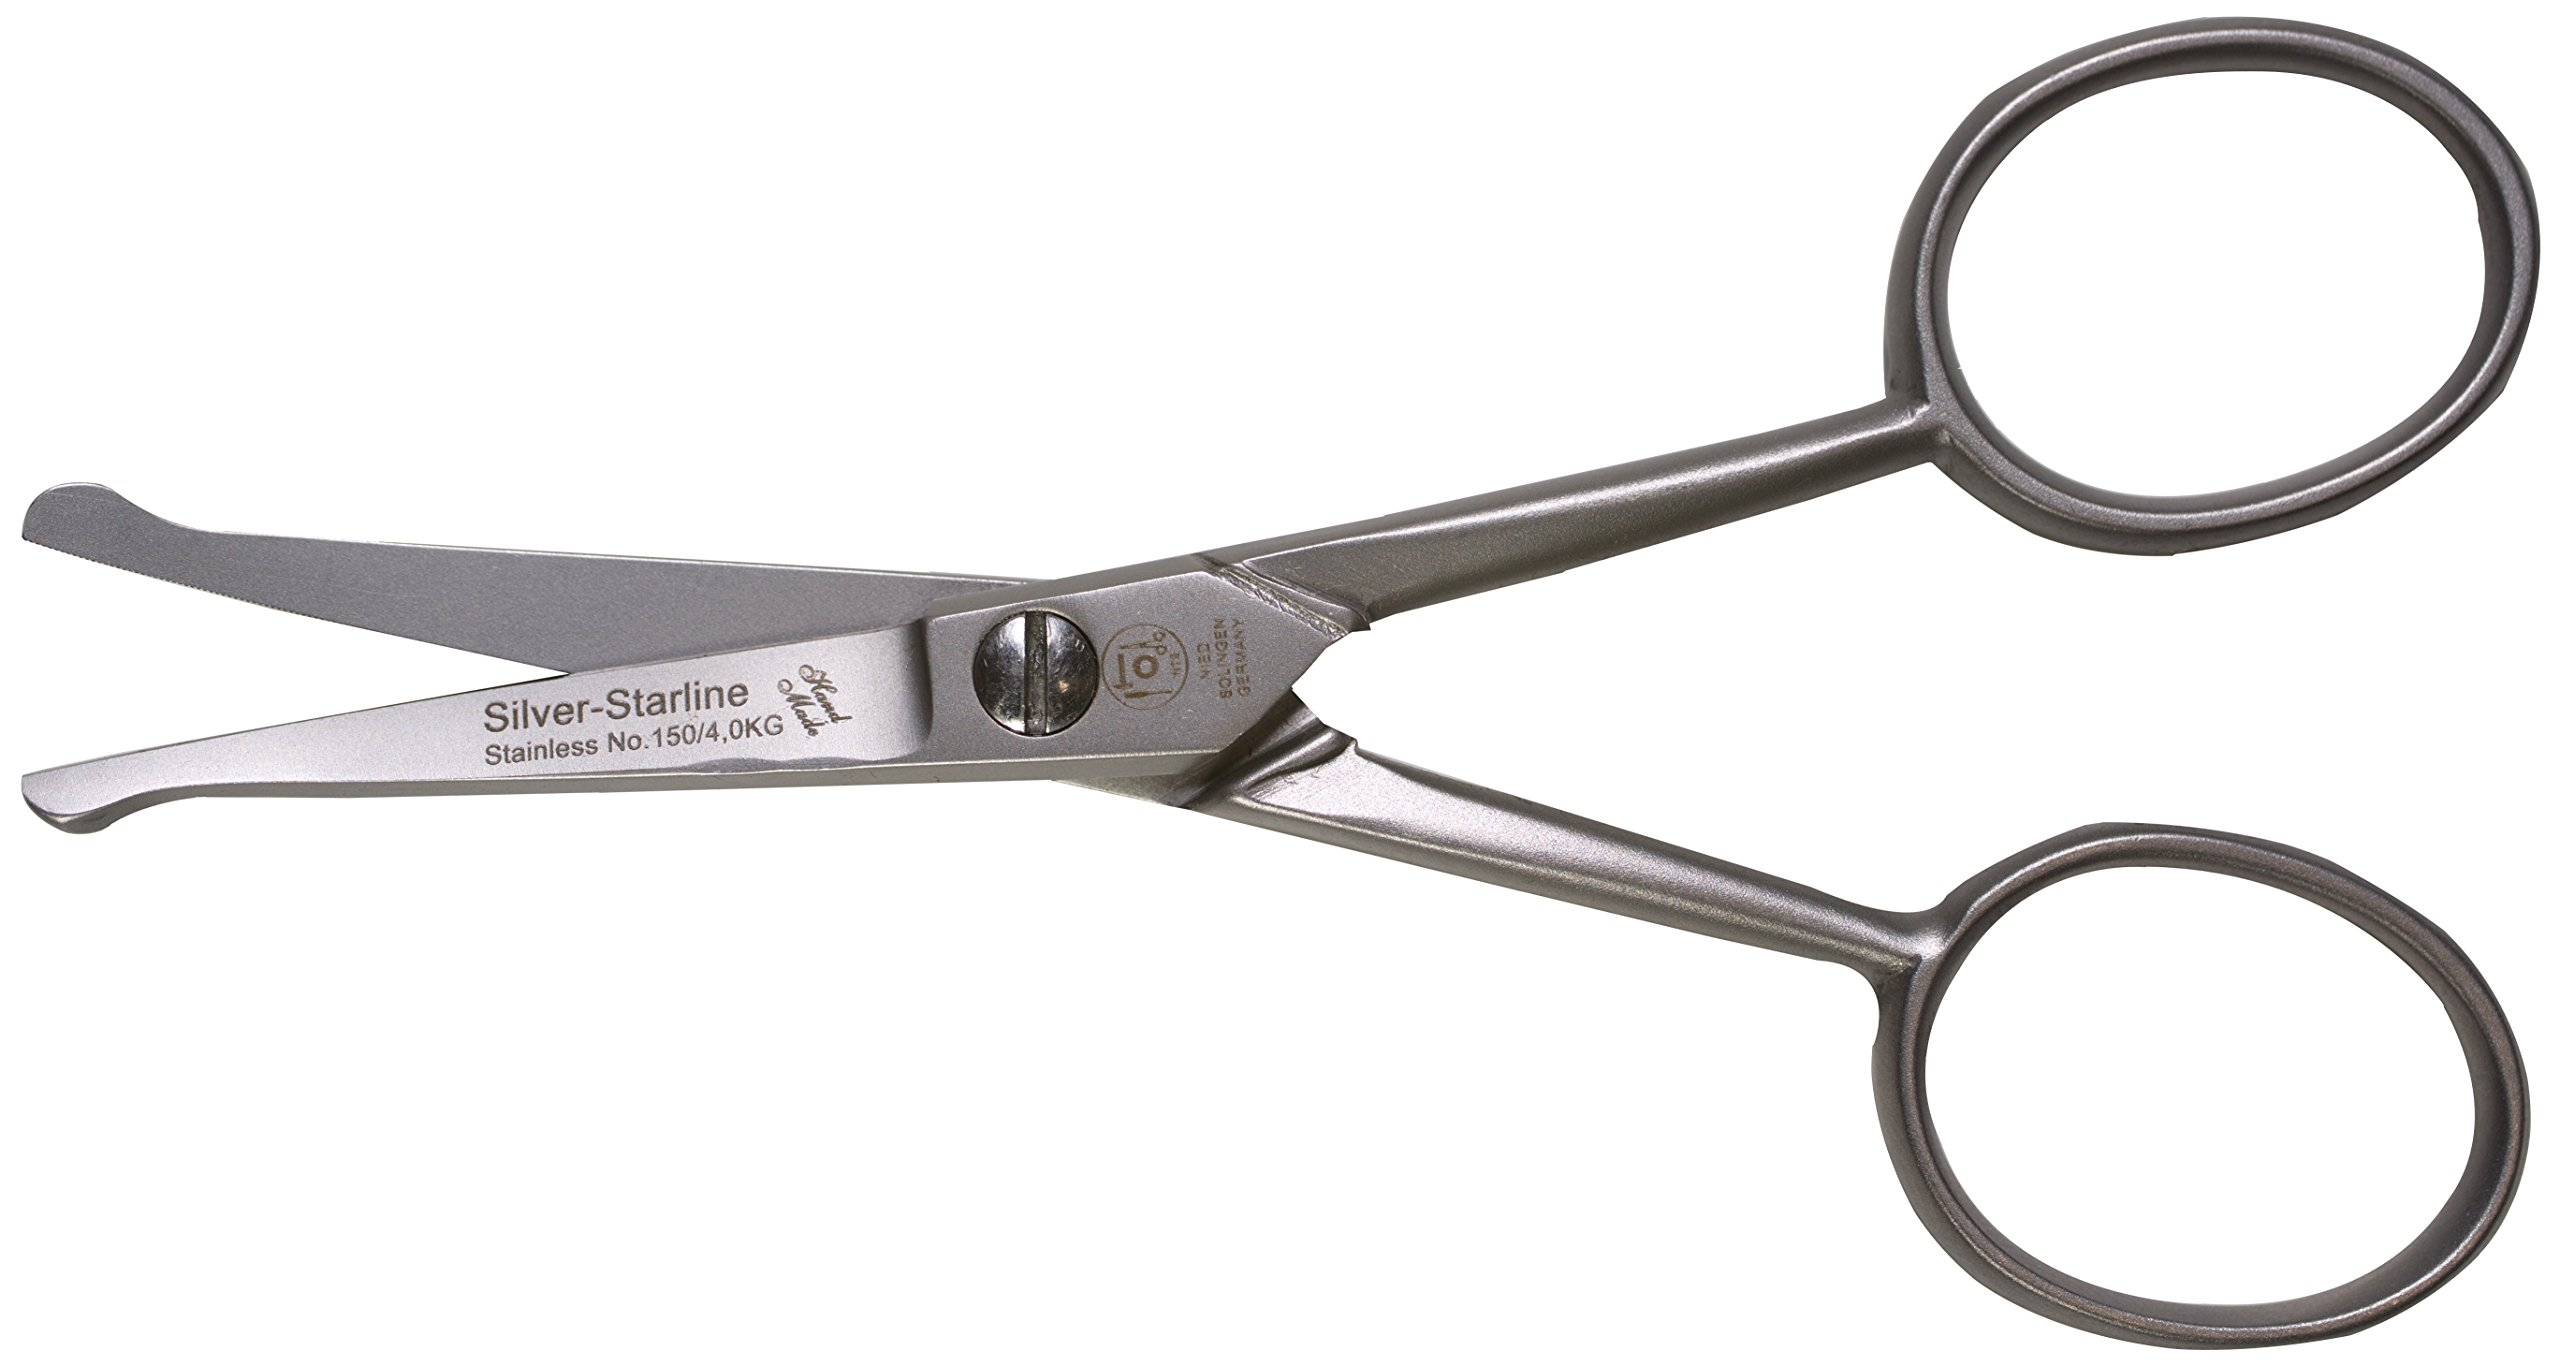 Silver Starline Combination Scissors for Beard, Nose, and Moustache, 4.15 Inches, Stainless Steel with Serrated Edge, Made in Solingen, Germany